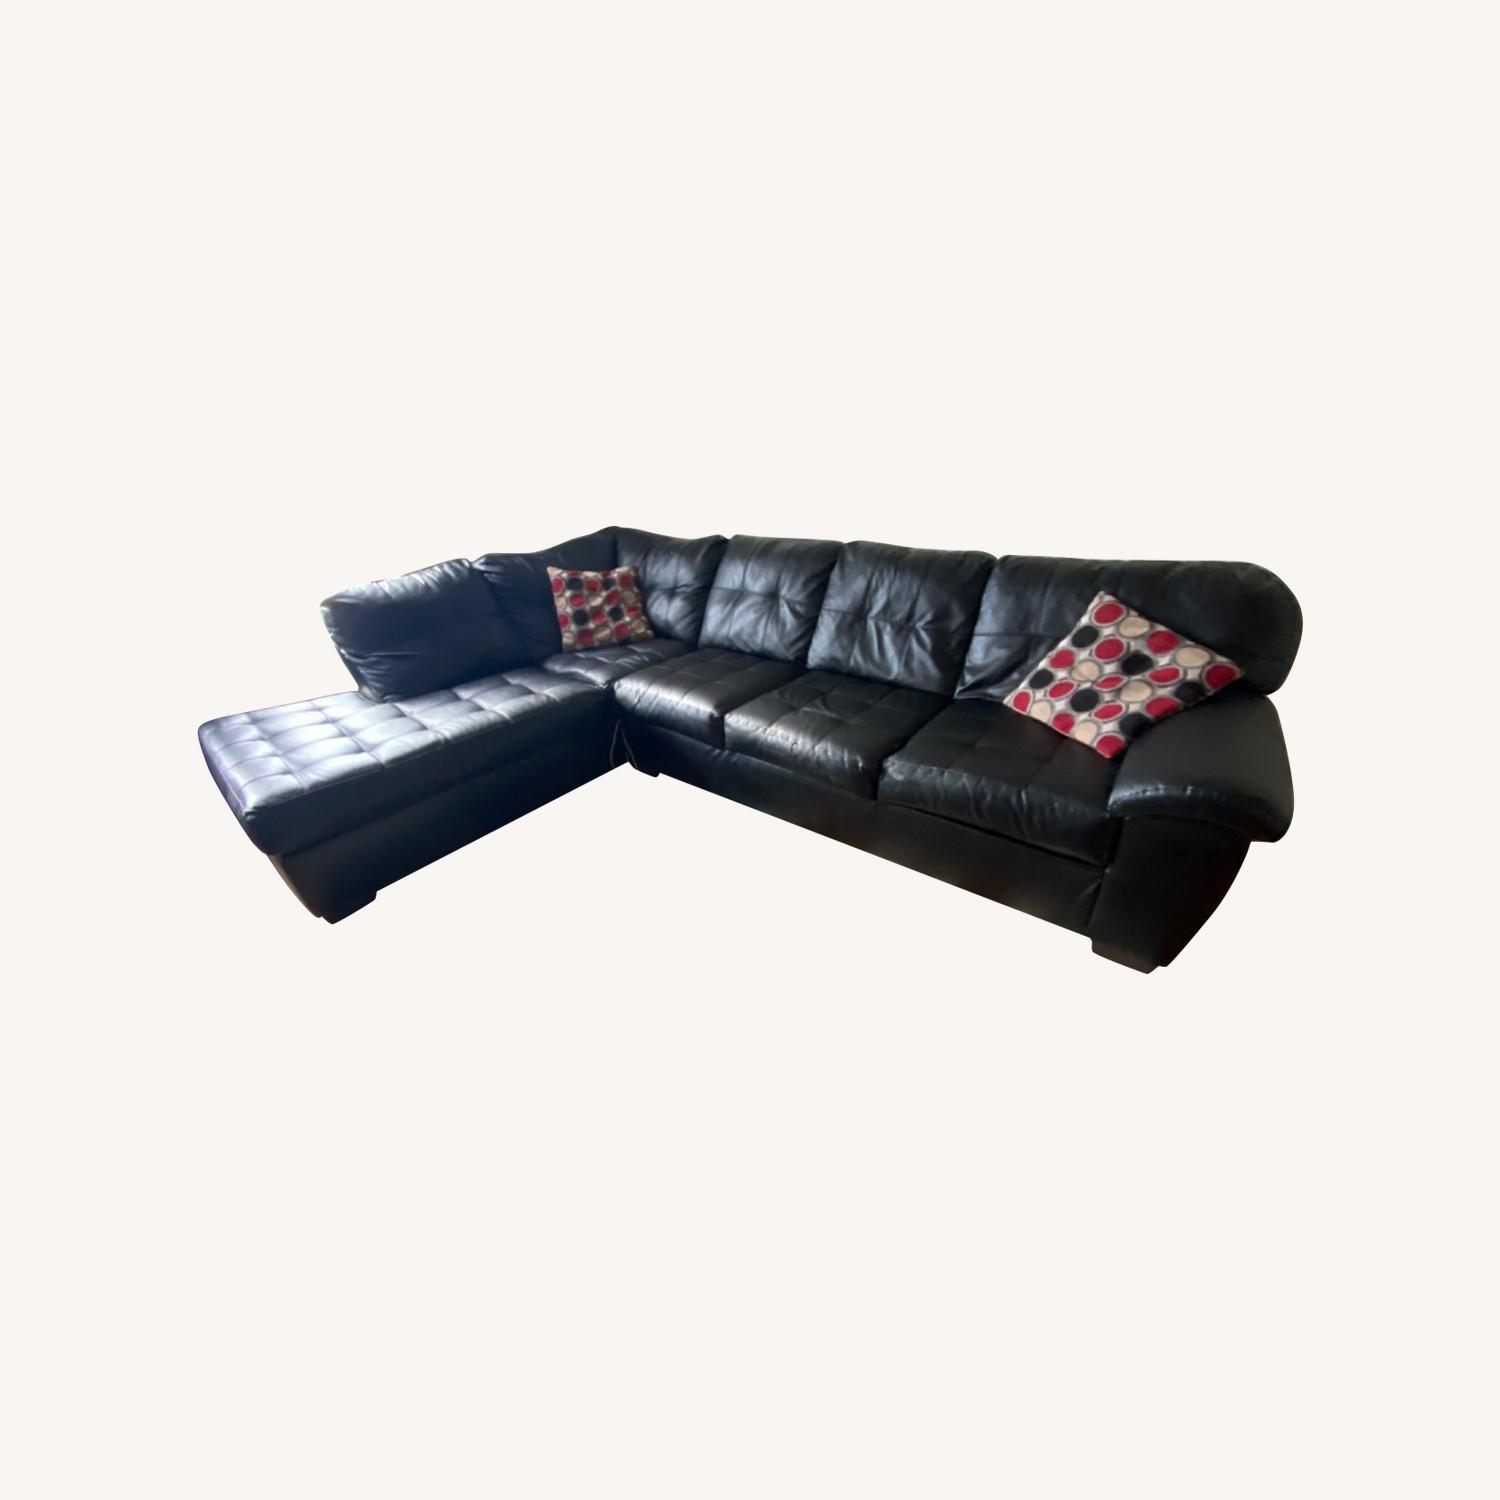 Bob's Discount Black Leather Couch - image-0